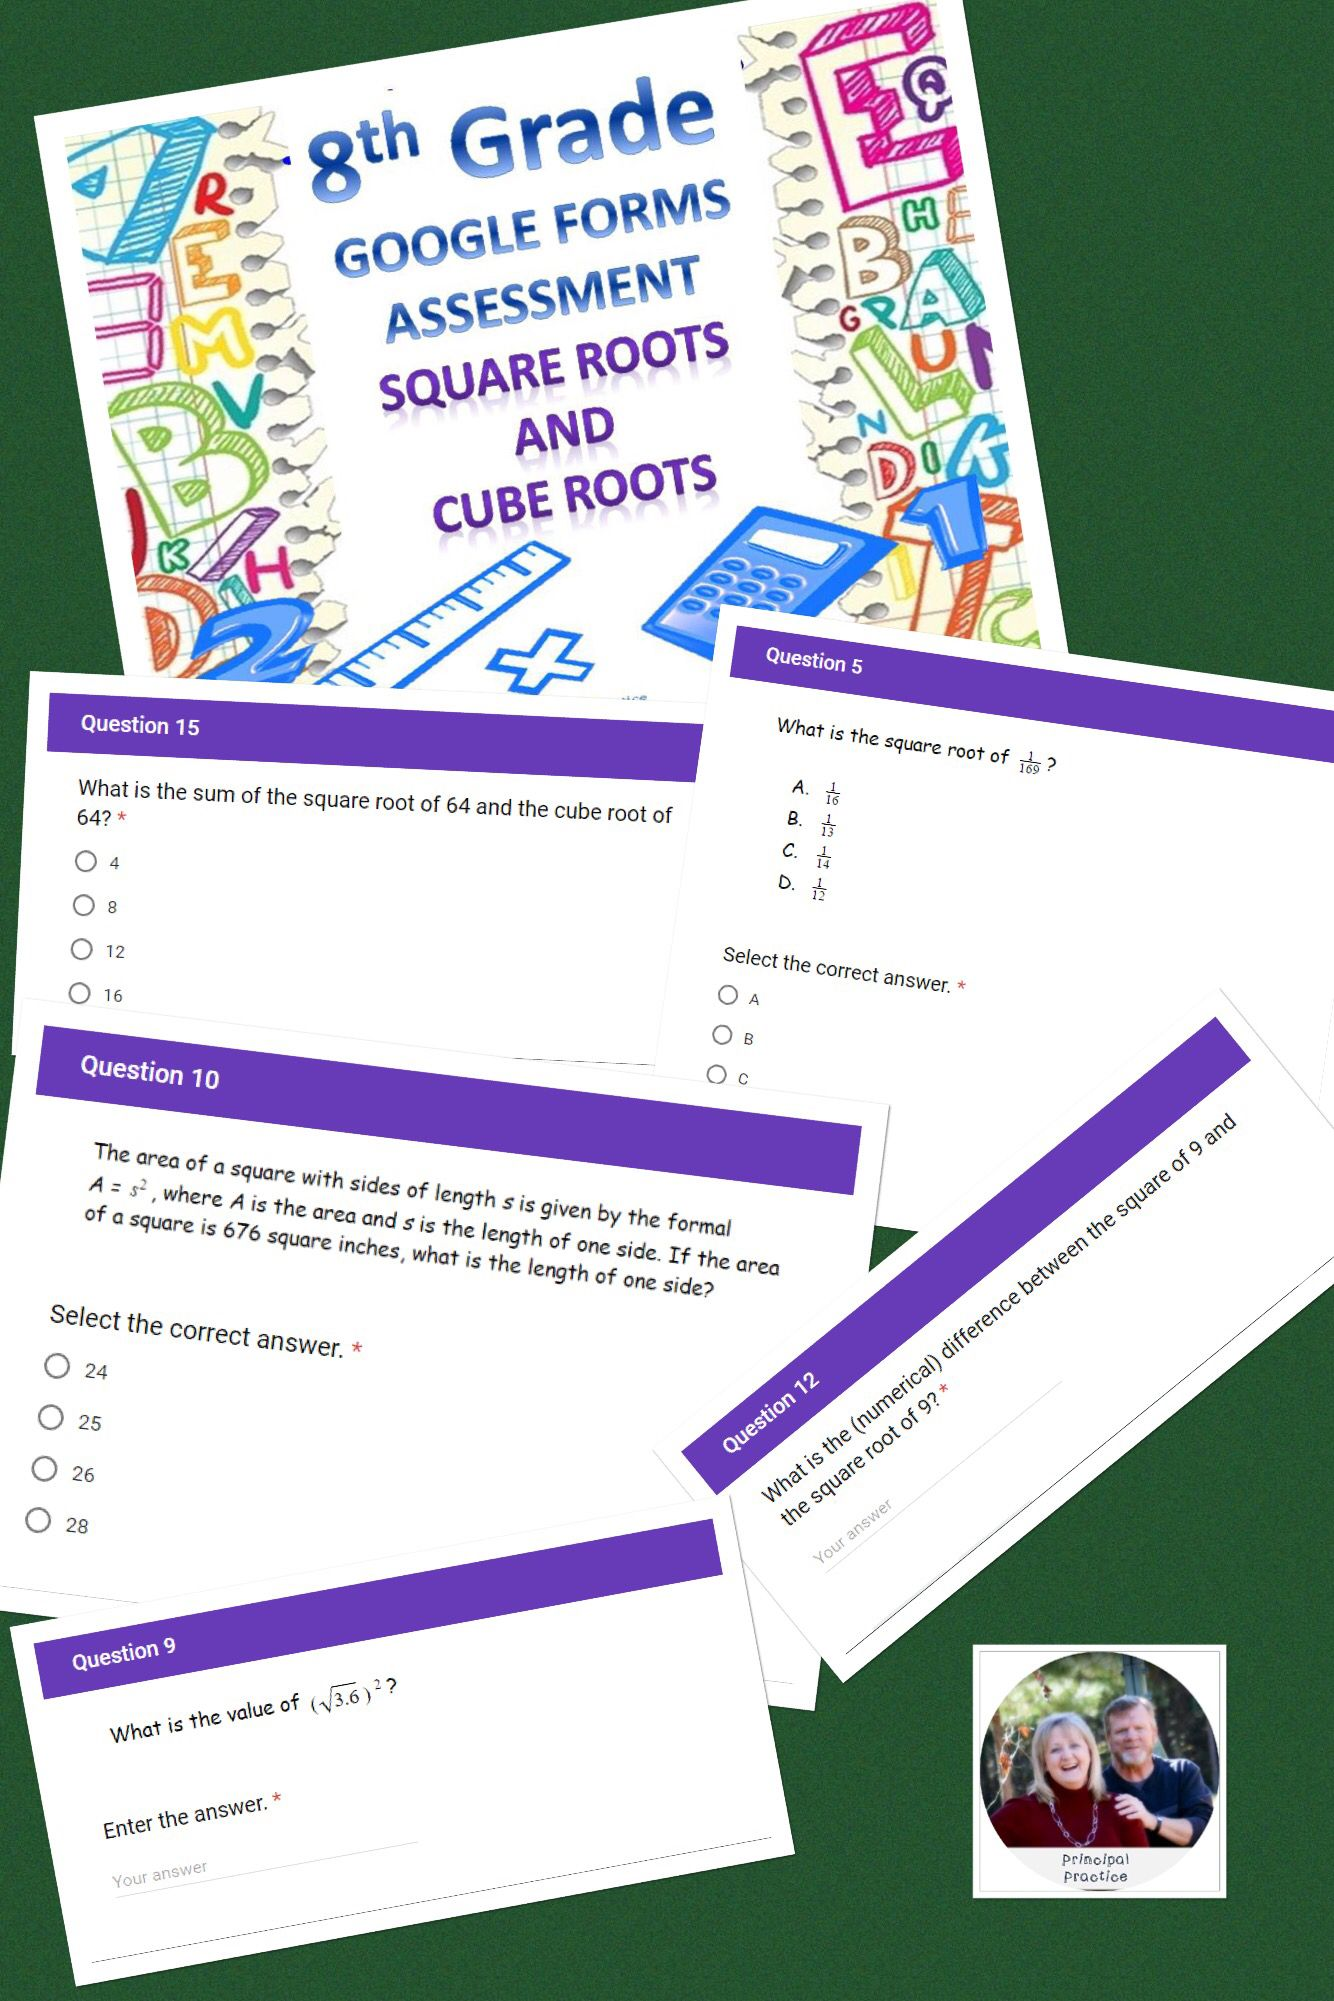 8th grade square roots and cube roots google forms assessment 8th grade square roots and cube roots google forms assessment national boardcreated 1betcityfo Gallery